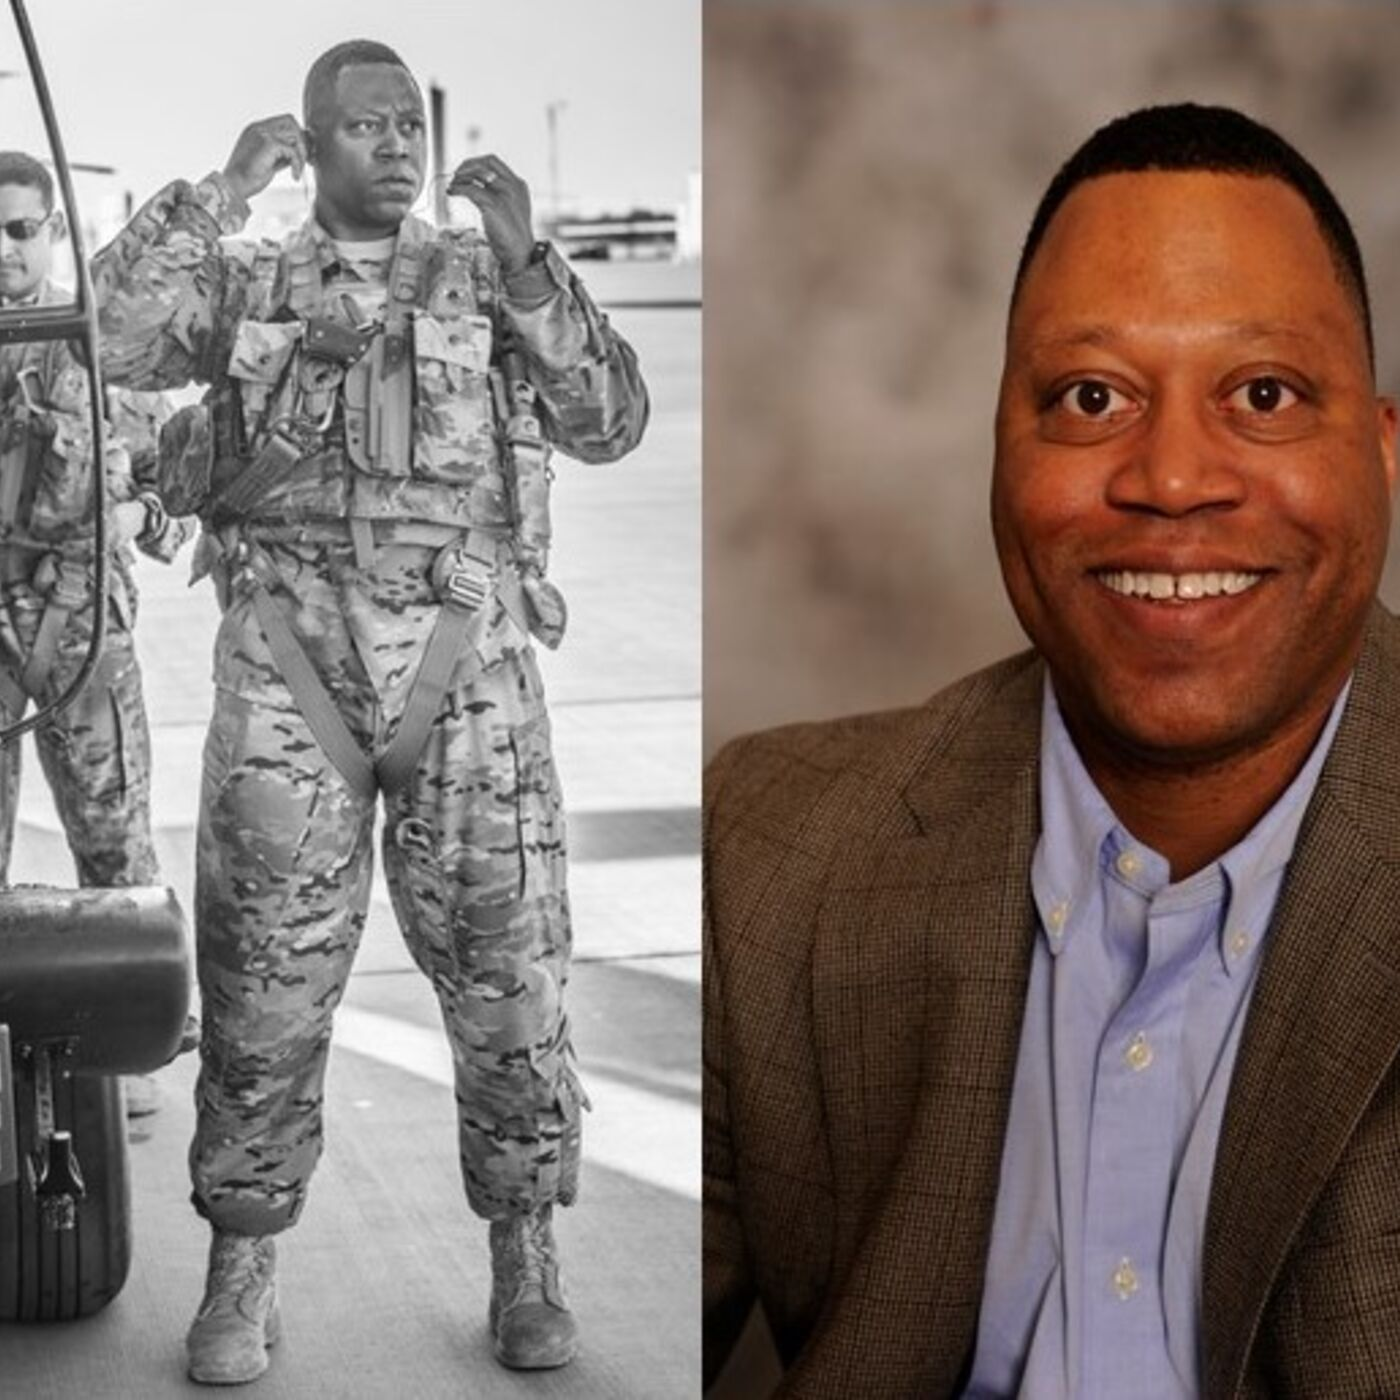 Tony Liles - 24 year Army Veteran, Human Capital Leader, Operations Manager, Husband & Father. (Season 2, Episode #34)